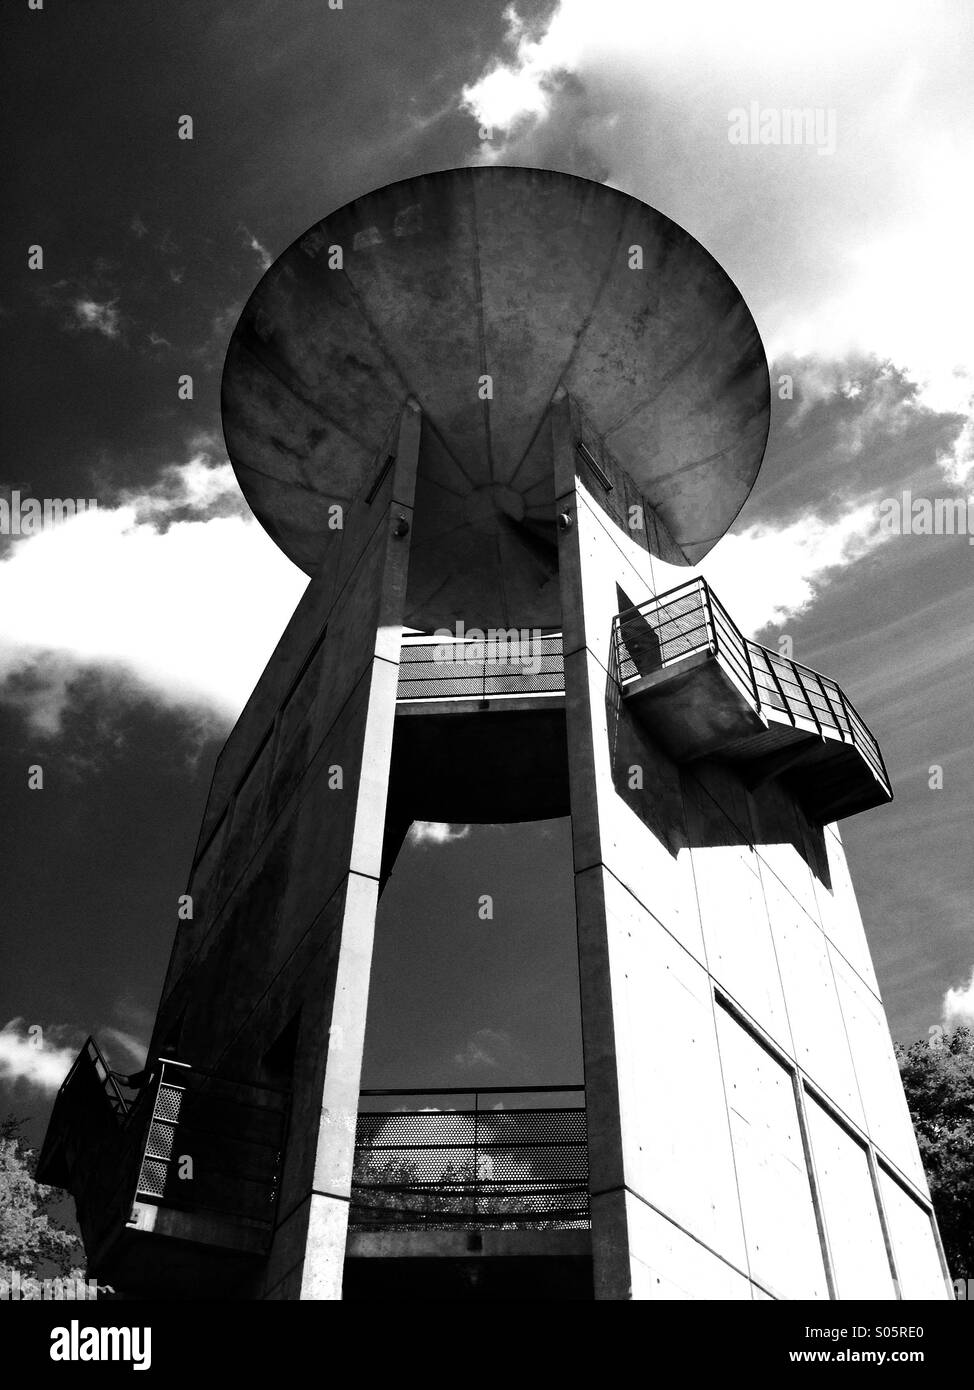 Space age satellite dish watching the sky, actually a viewing platform in a French Forrest - Stock Image